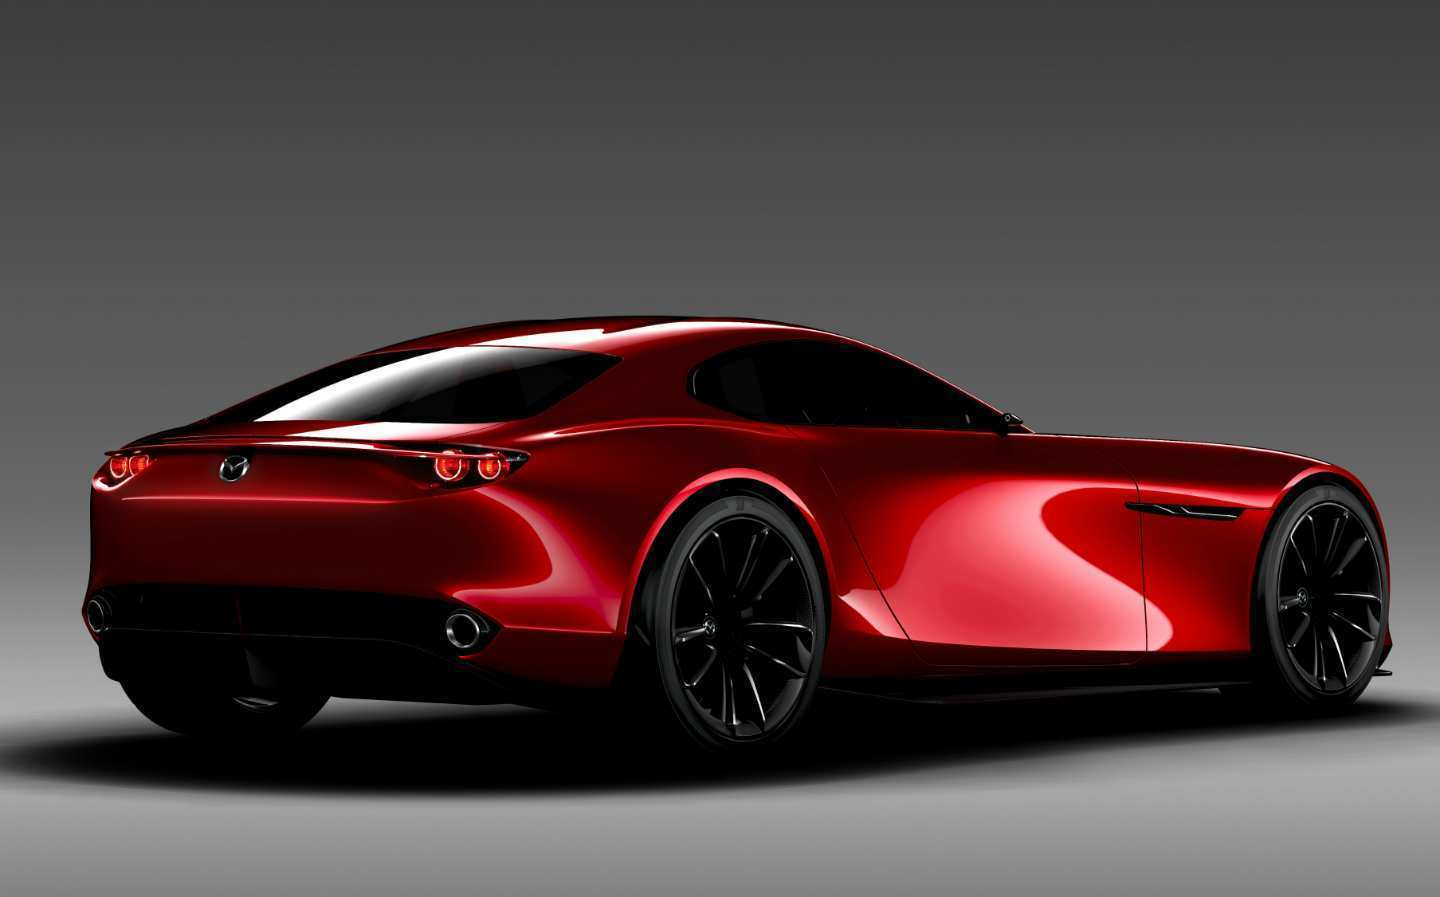 94 Best Review 2020 Mazda RX7s Redesign with 2020 Mazda RX7s